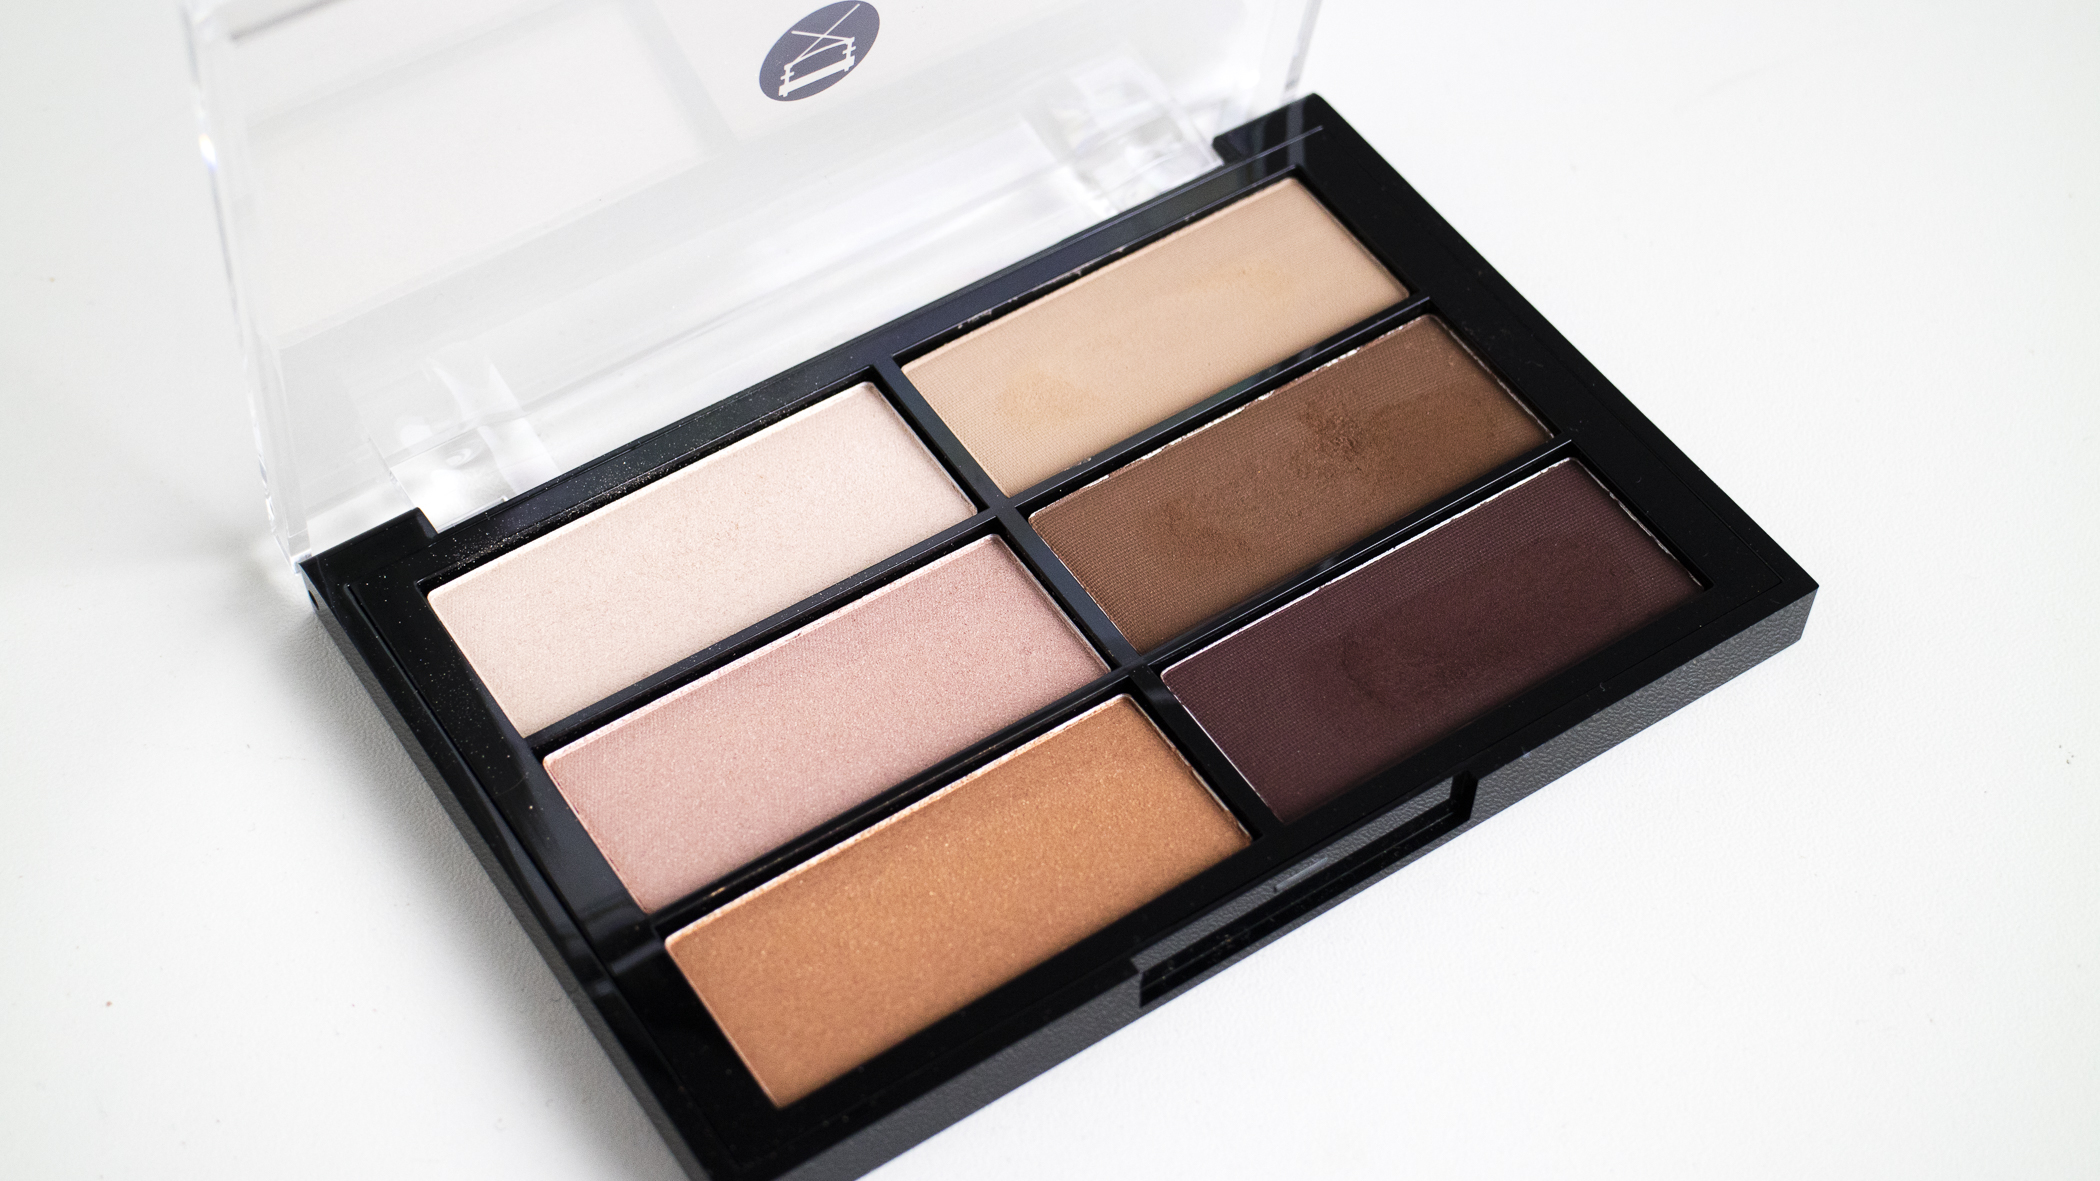 Viseart Highlight and Sculpt Palette